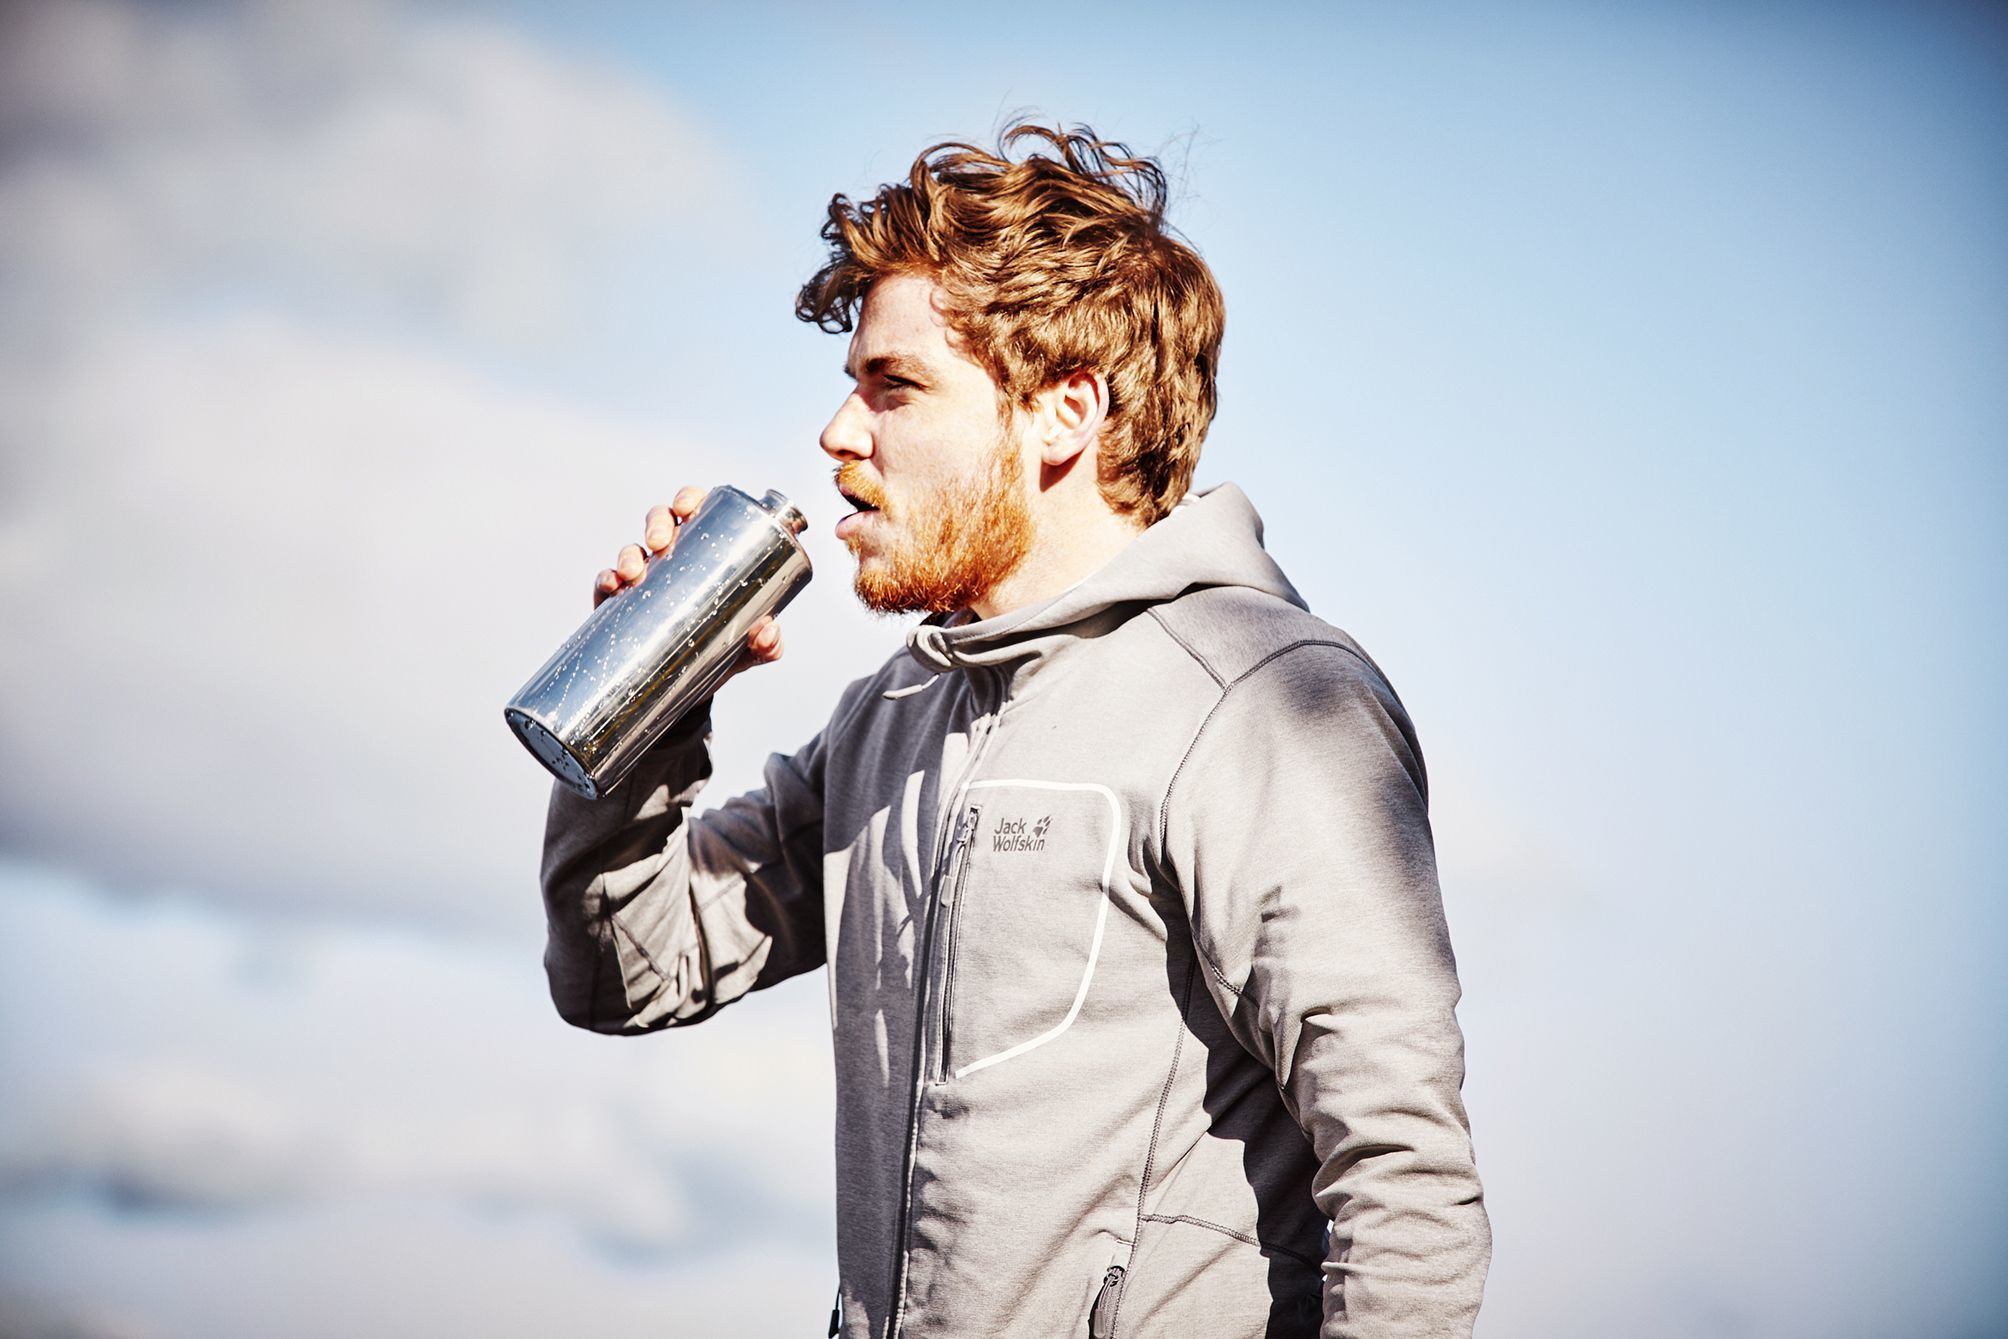 Young man juxtaposed infront of a semi cloudy sky in his jack wolfskin jacket drinking from a